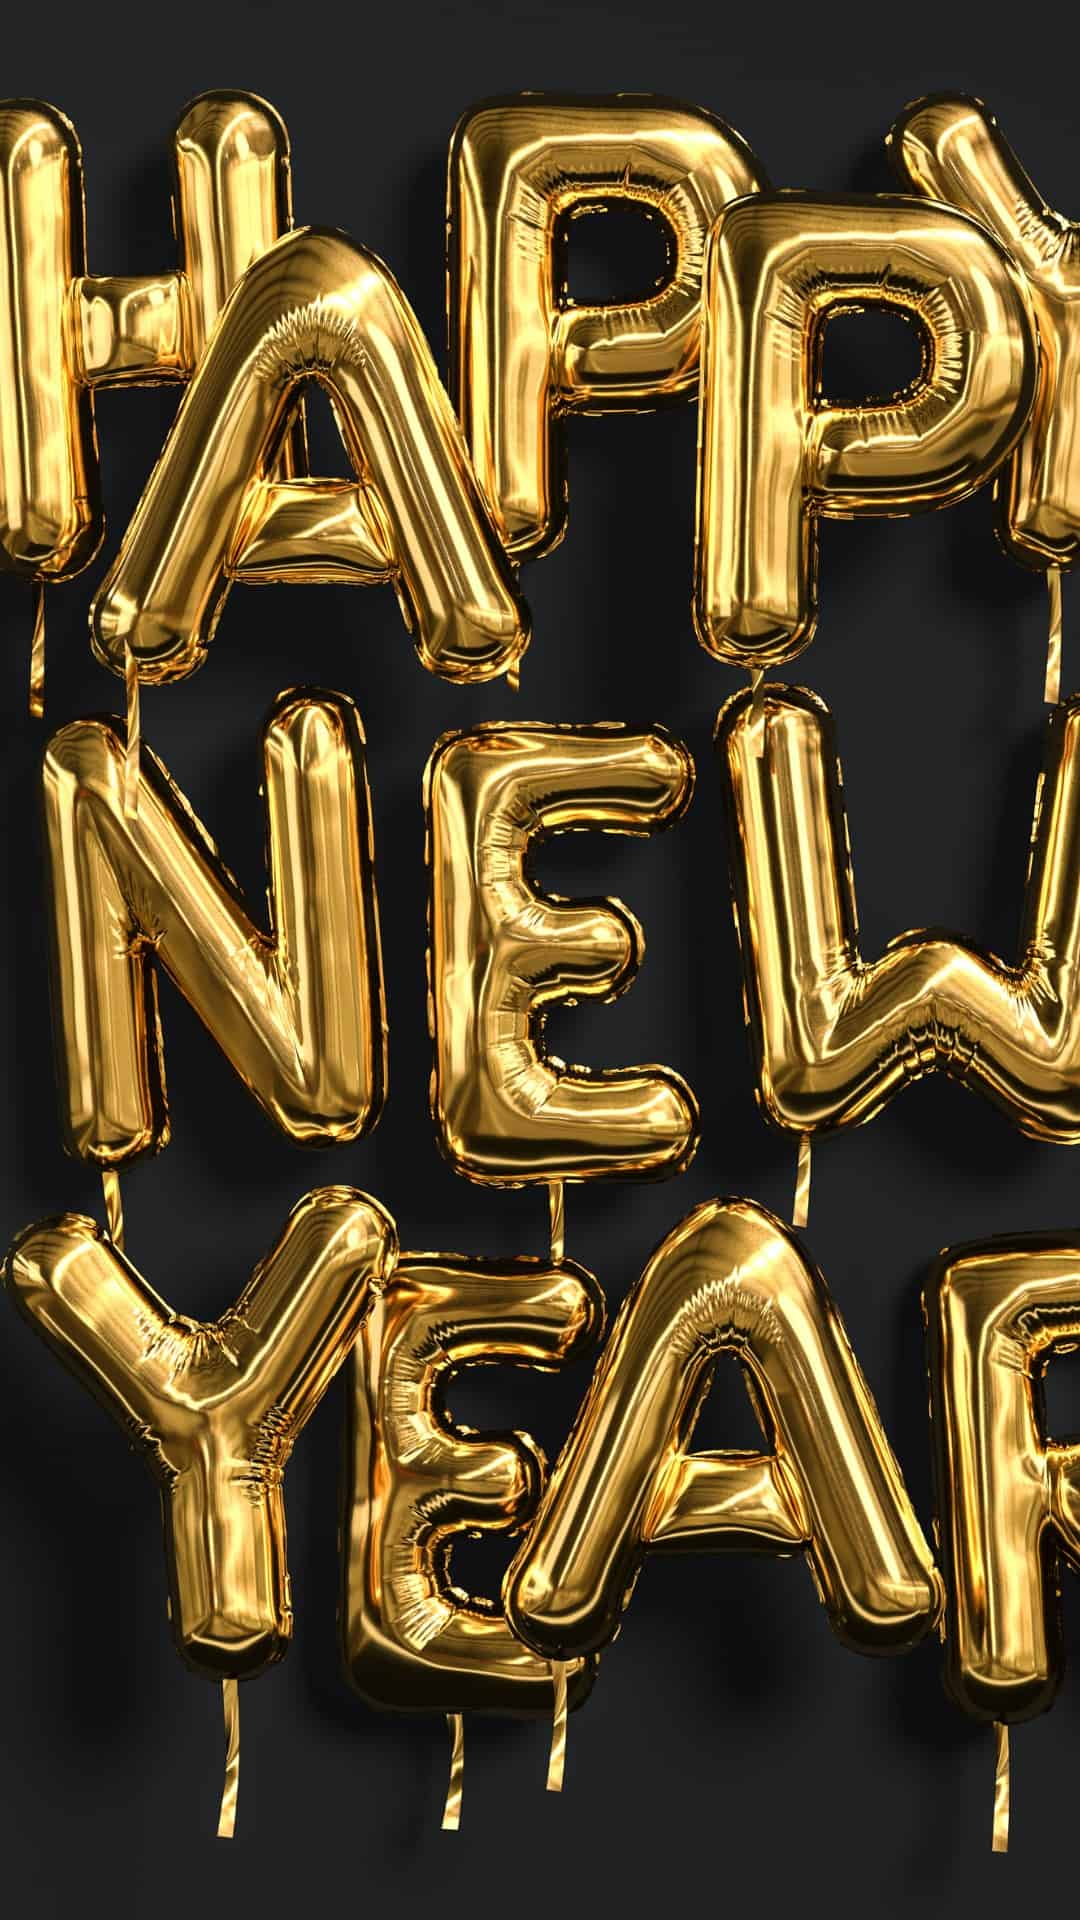 Happy New Years Aesthetic iPhone Wallpaper Backgrounds 4